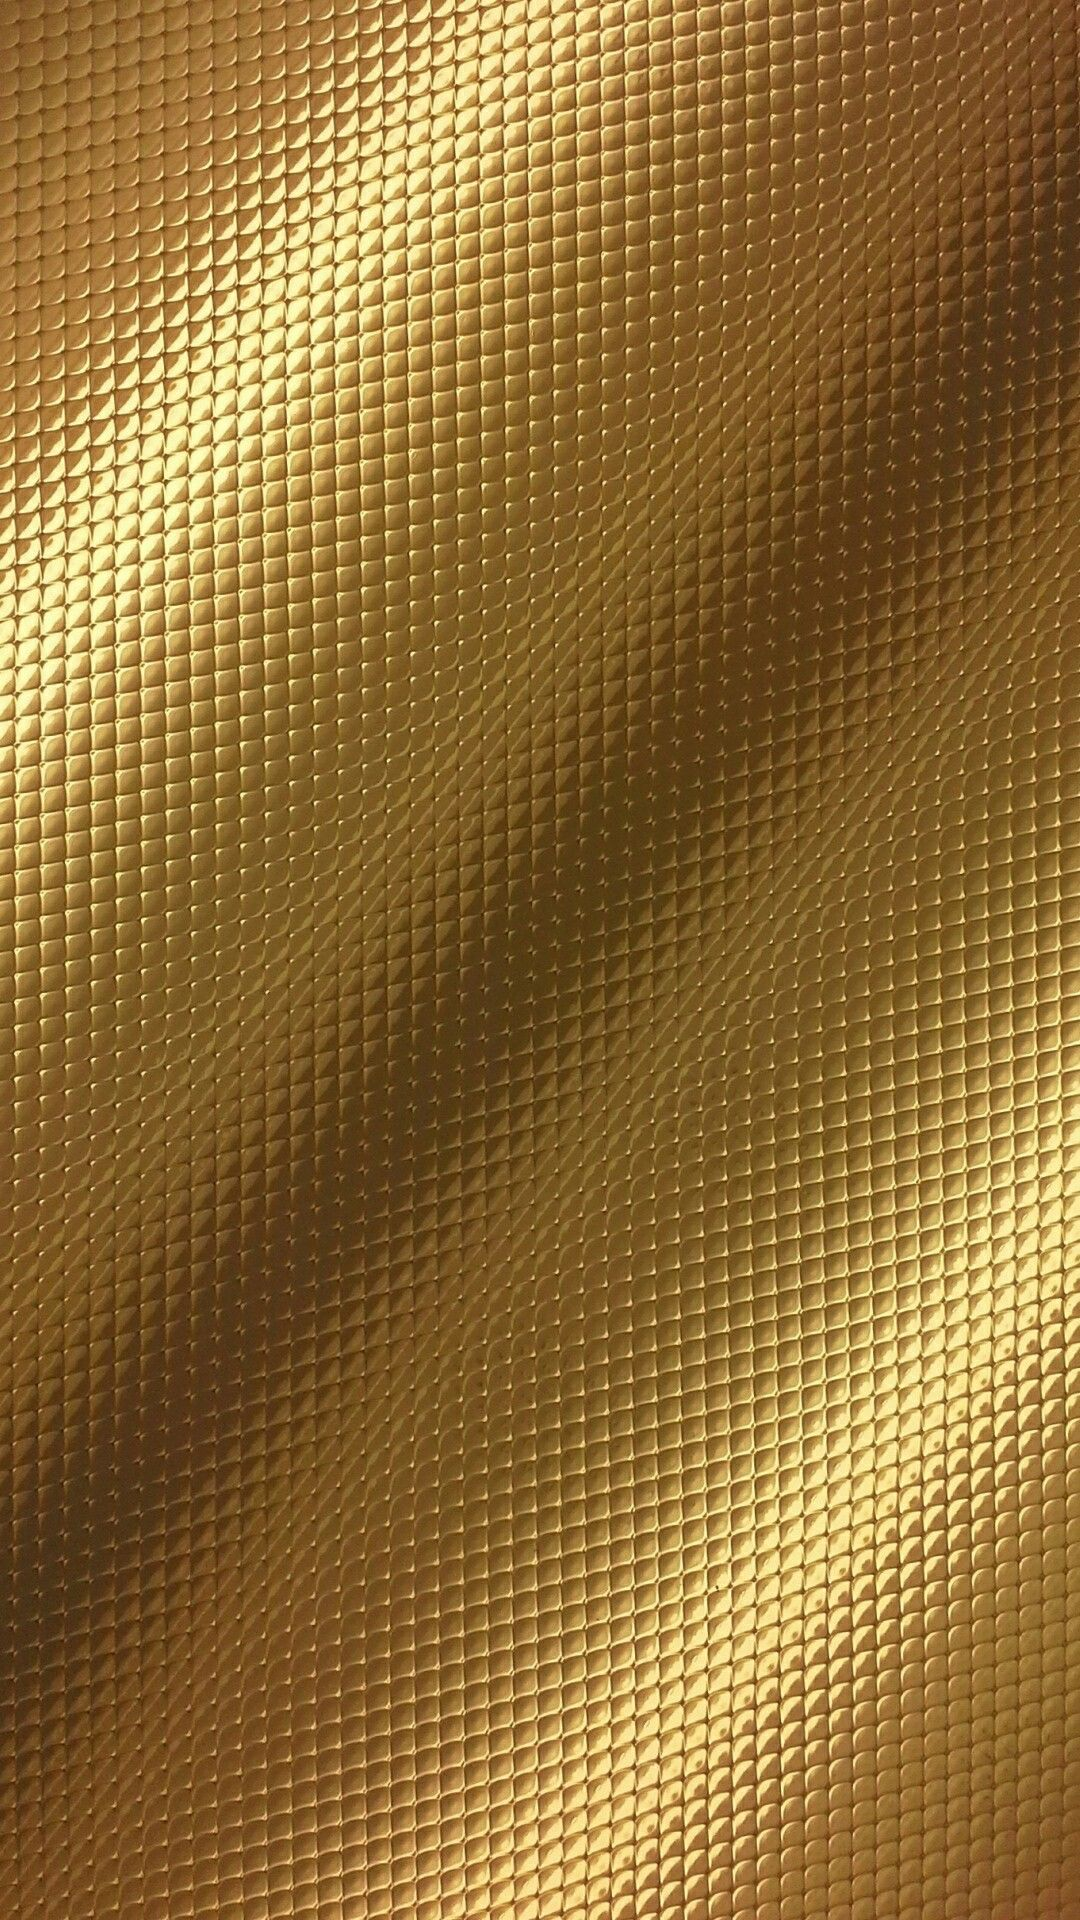 Fondo dorado Iphone 7 Wallpapers, Wallpaper Backgrounds, Gold Wallpaper Samsung, Cellphone Wallpaper,